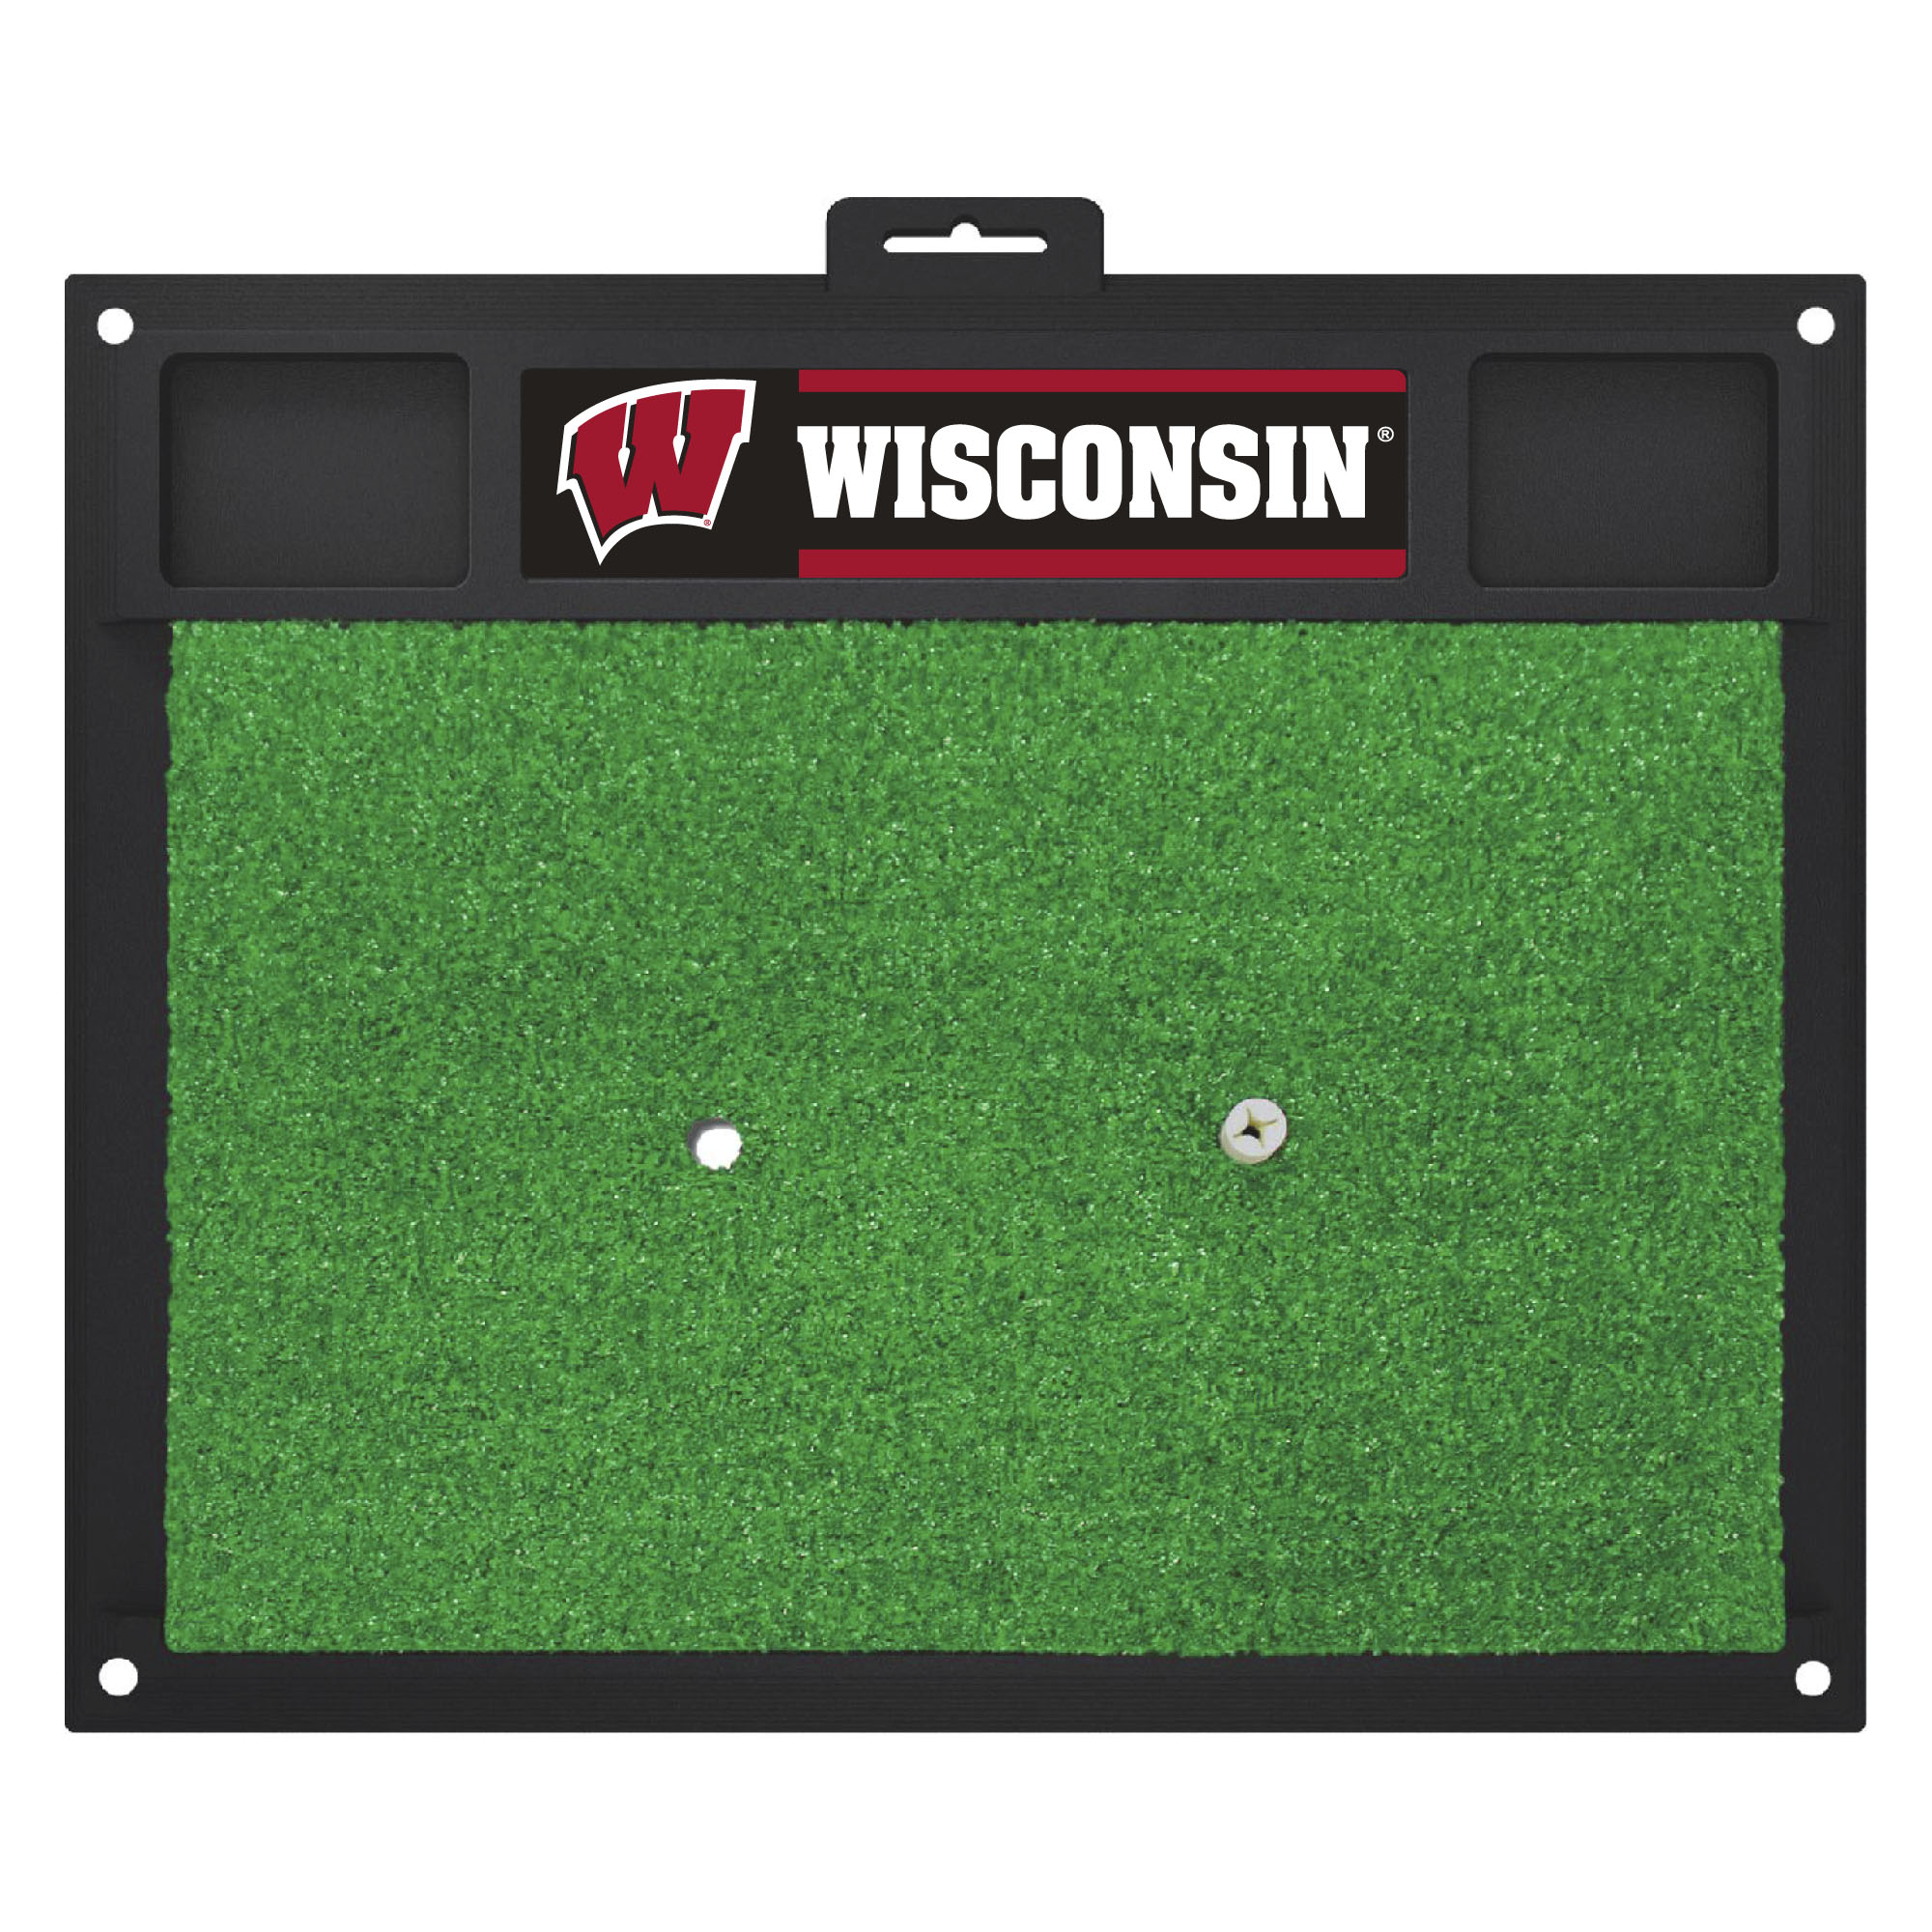 15517 Fanmats College NCAA University of Wisconsin 20 Inch x 17 Inch heavy duty vinyl Removable rubber Golf Hitting Mat